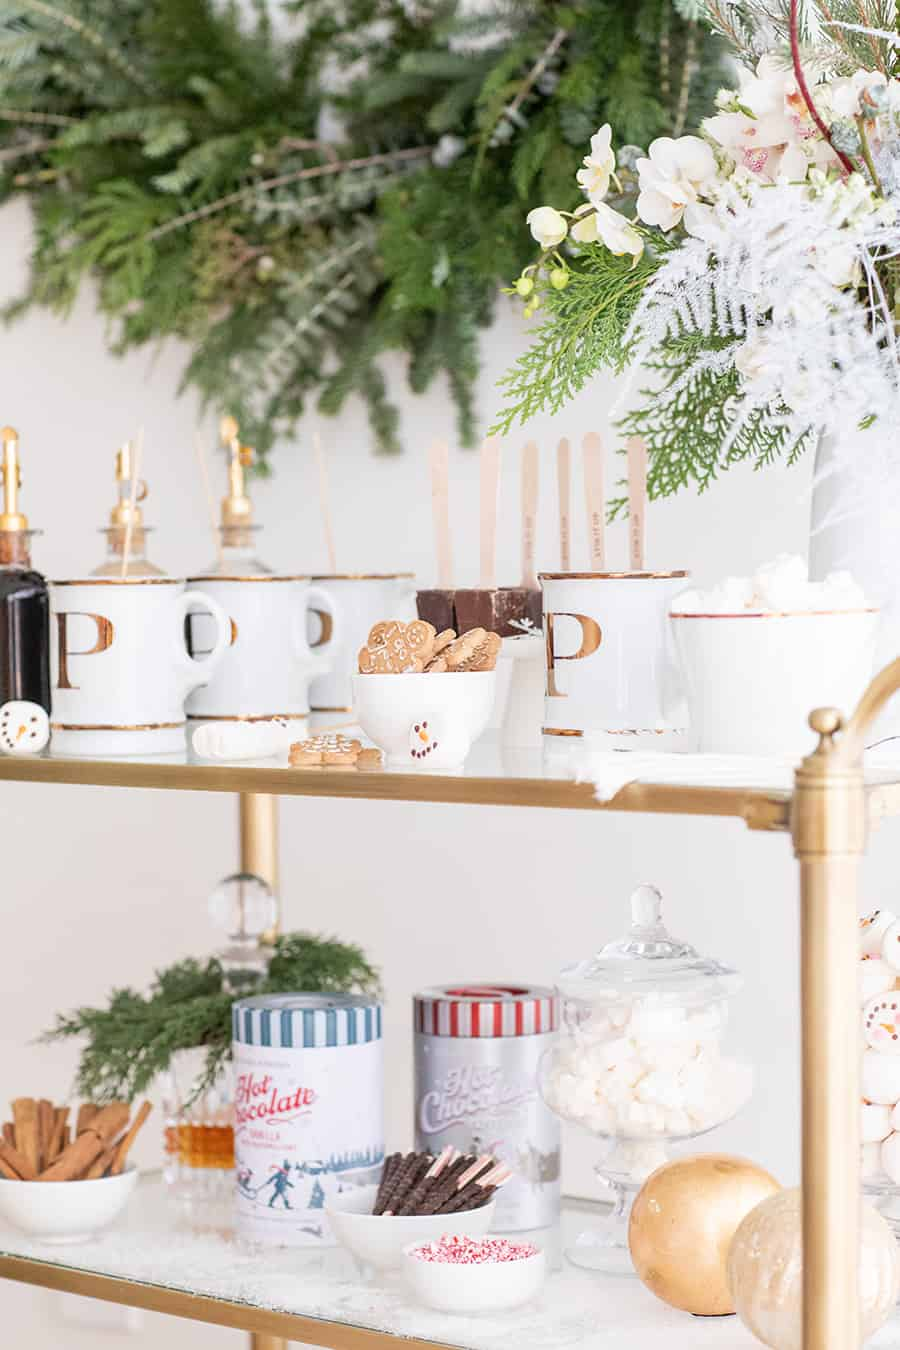 Hot cocoa, mugs, marshmallows and flowers on a brass bar cart.